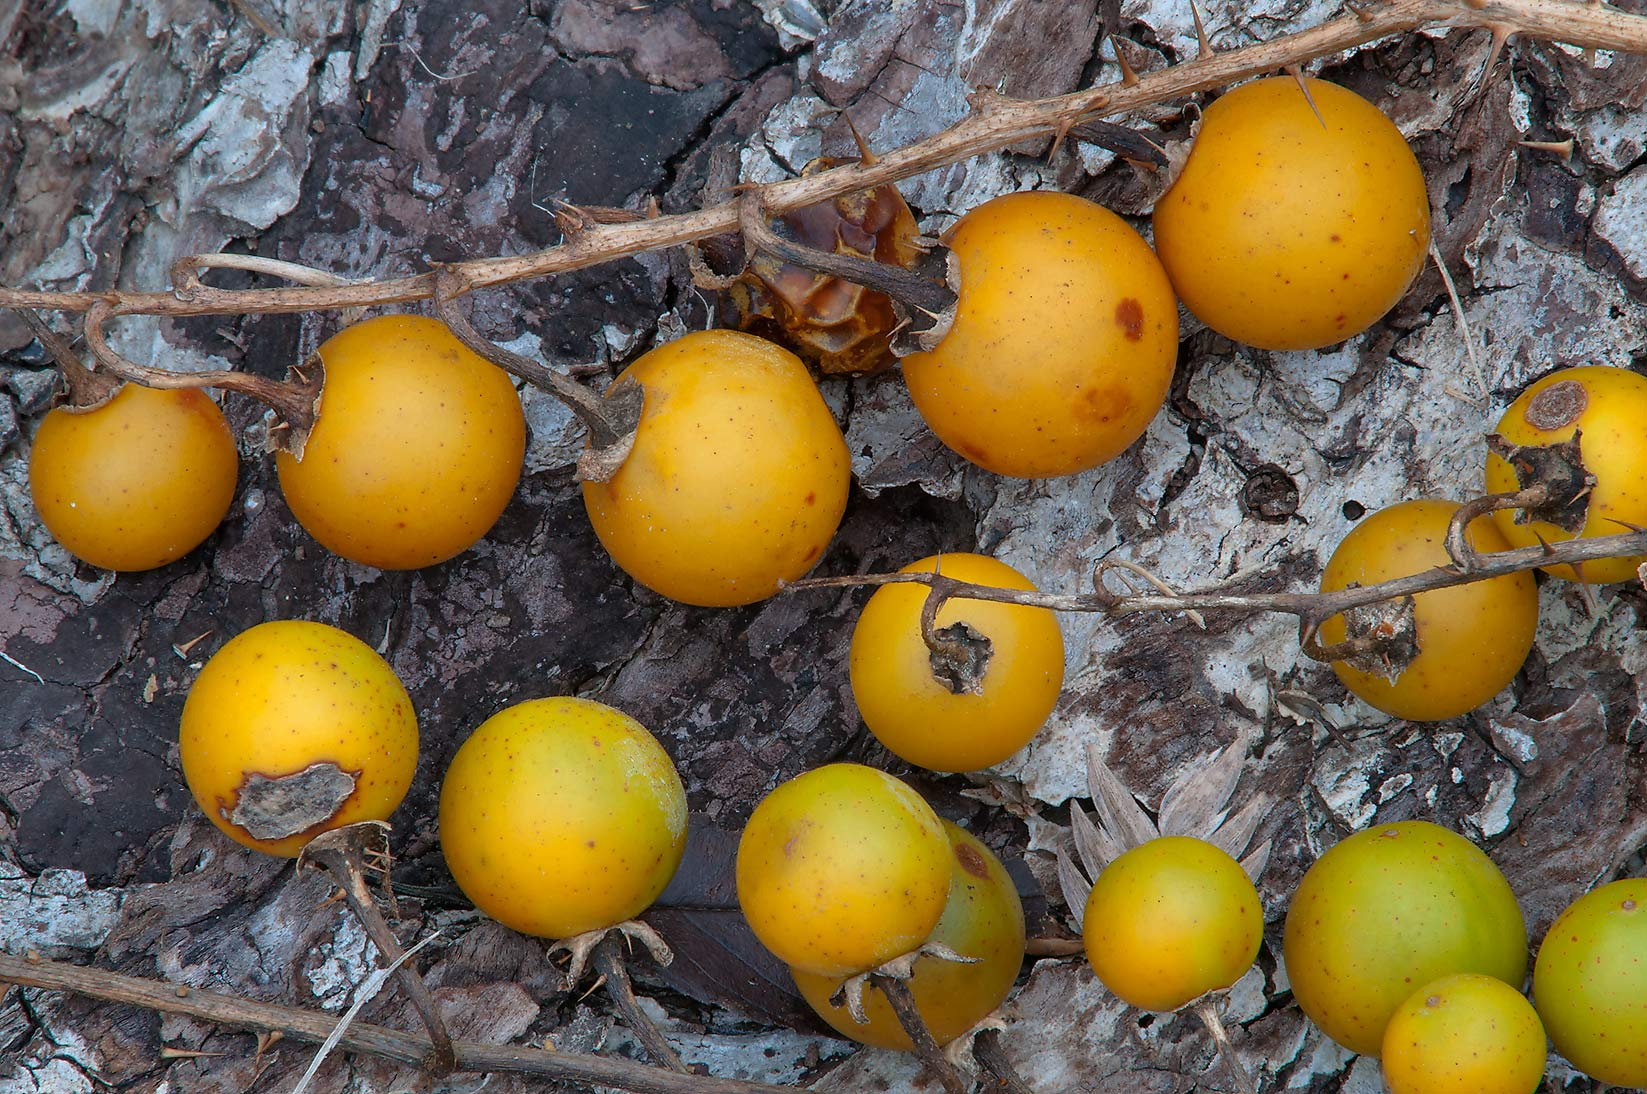 Yellow berries of horsenettle (Solanum...Creek Park. College Station, Texas